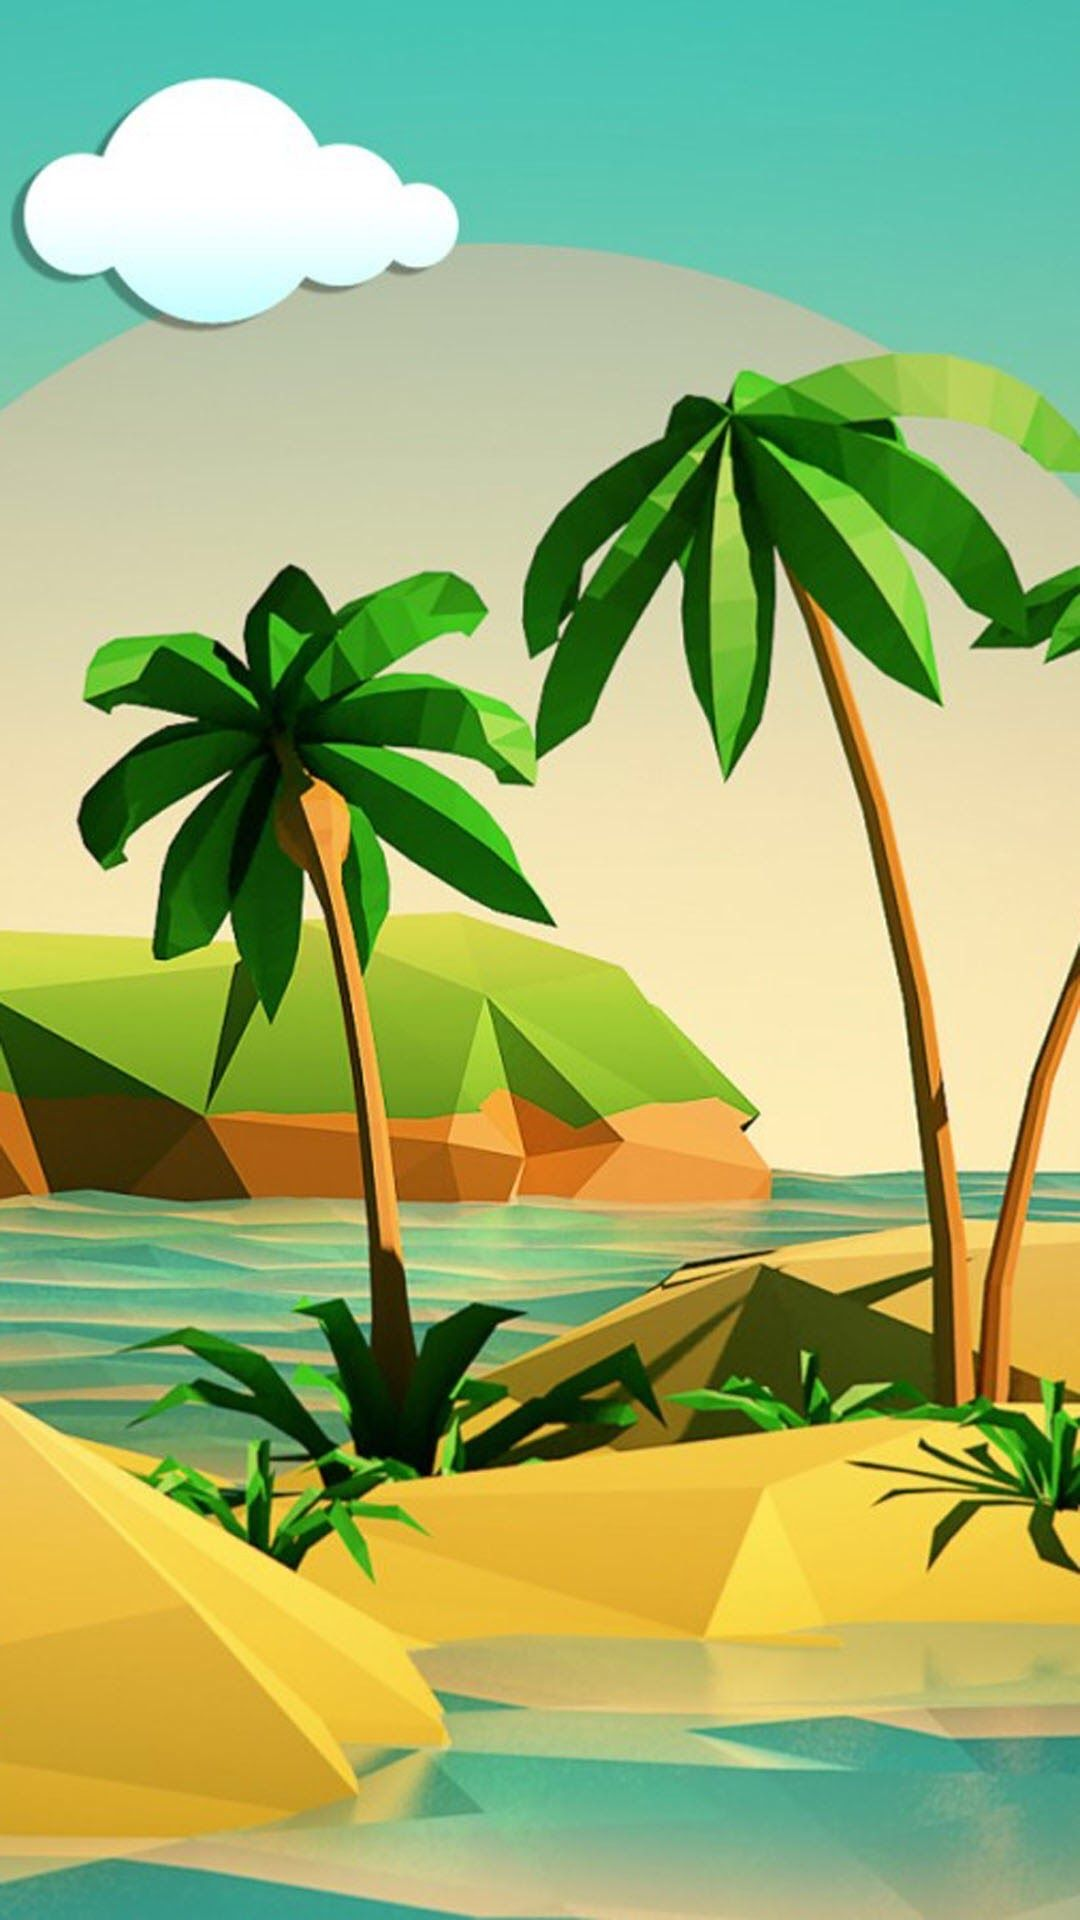 Get Cool Illustration Phone Wallpaper HD 2020 by Uploaded by user